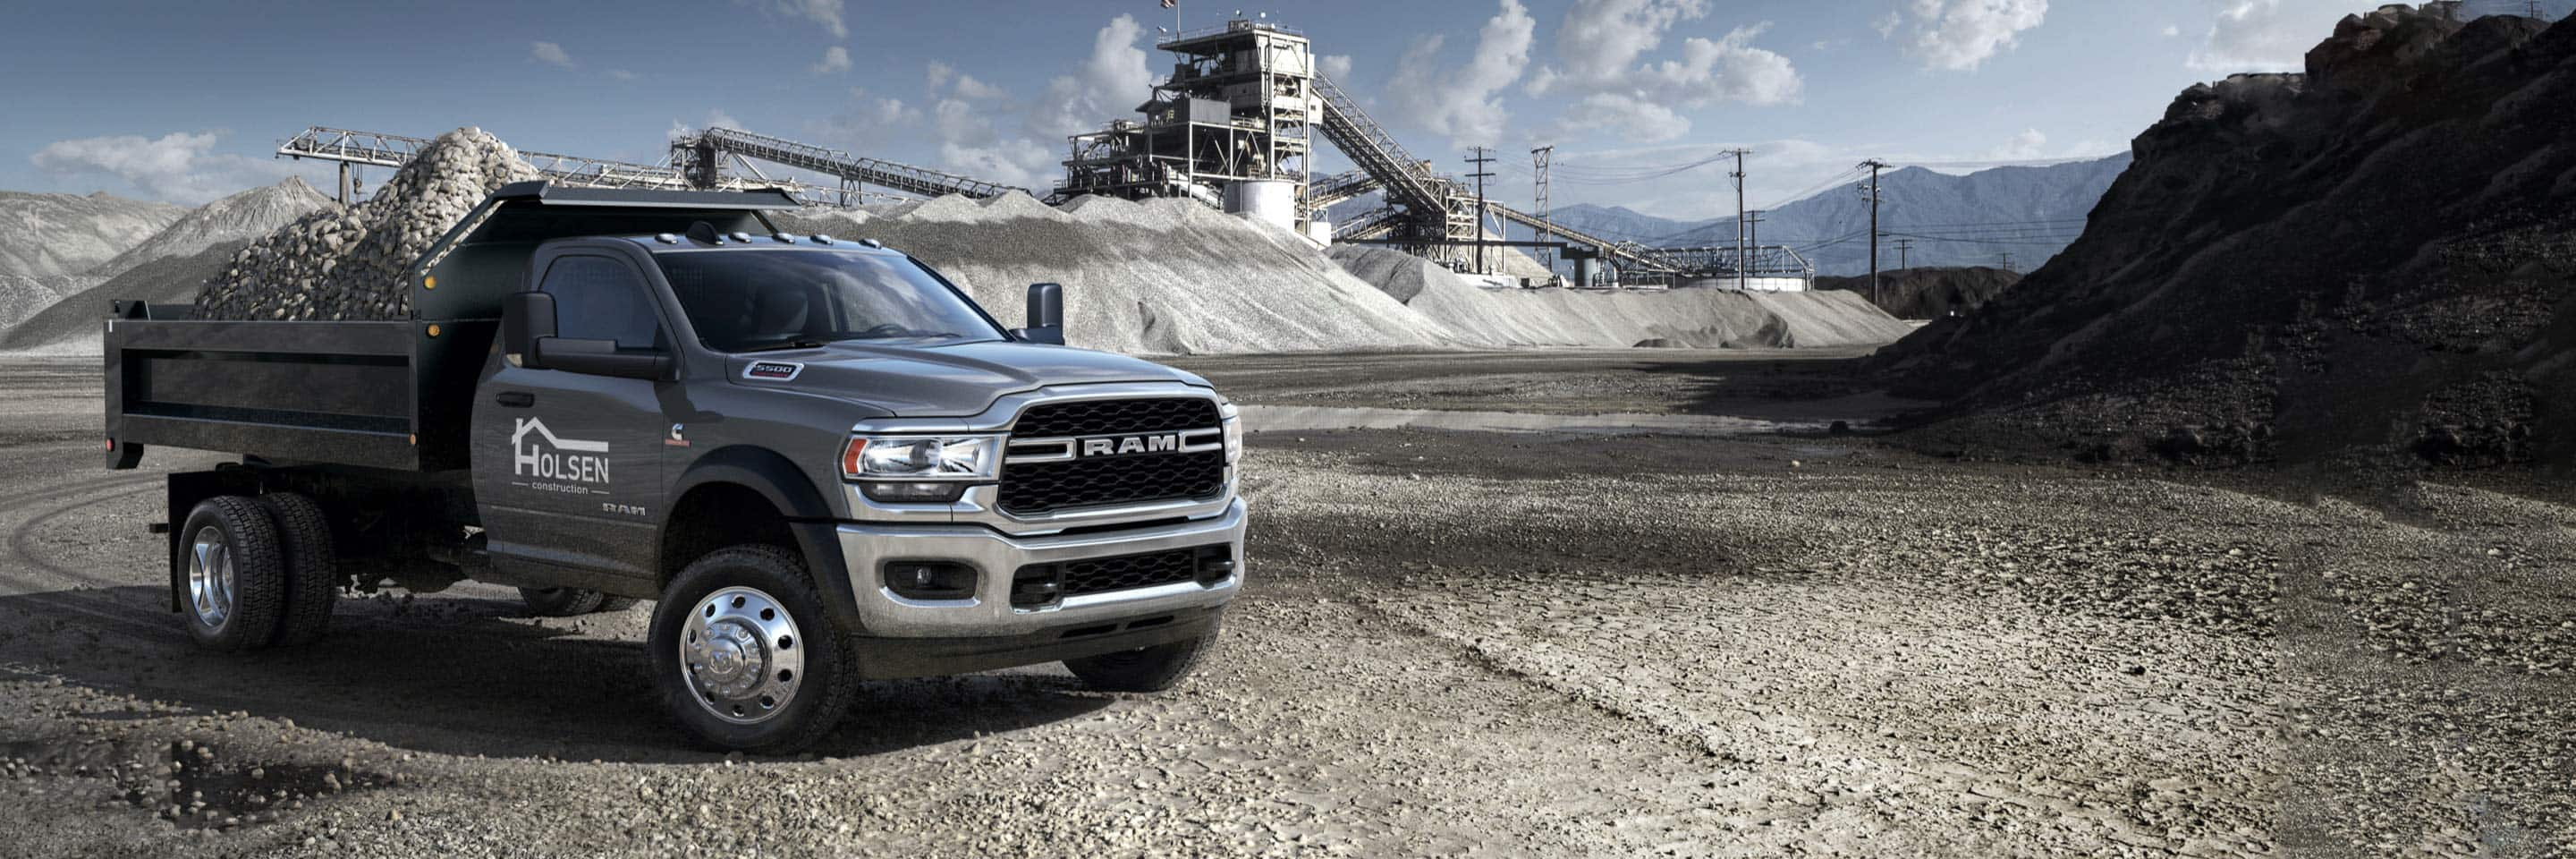 The 2021 Ram Chassis Cab with a dump truck upfit loaded with gravel.